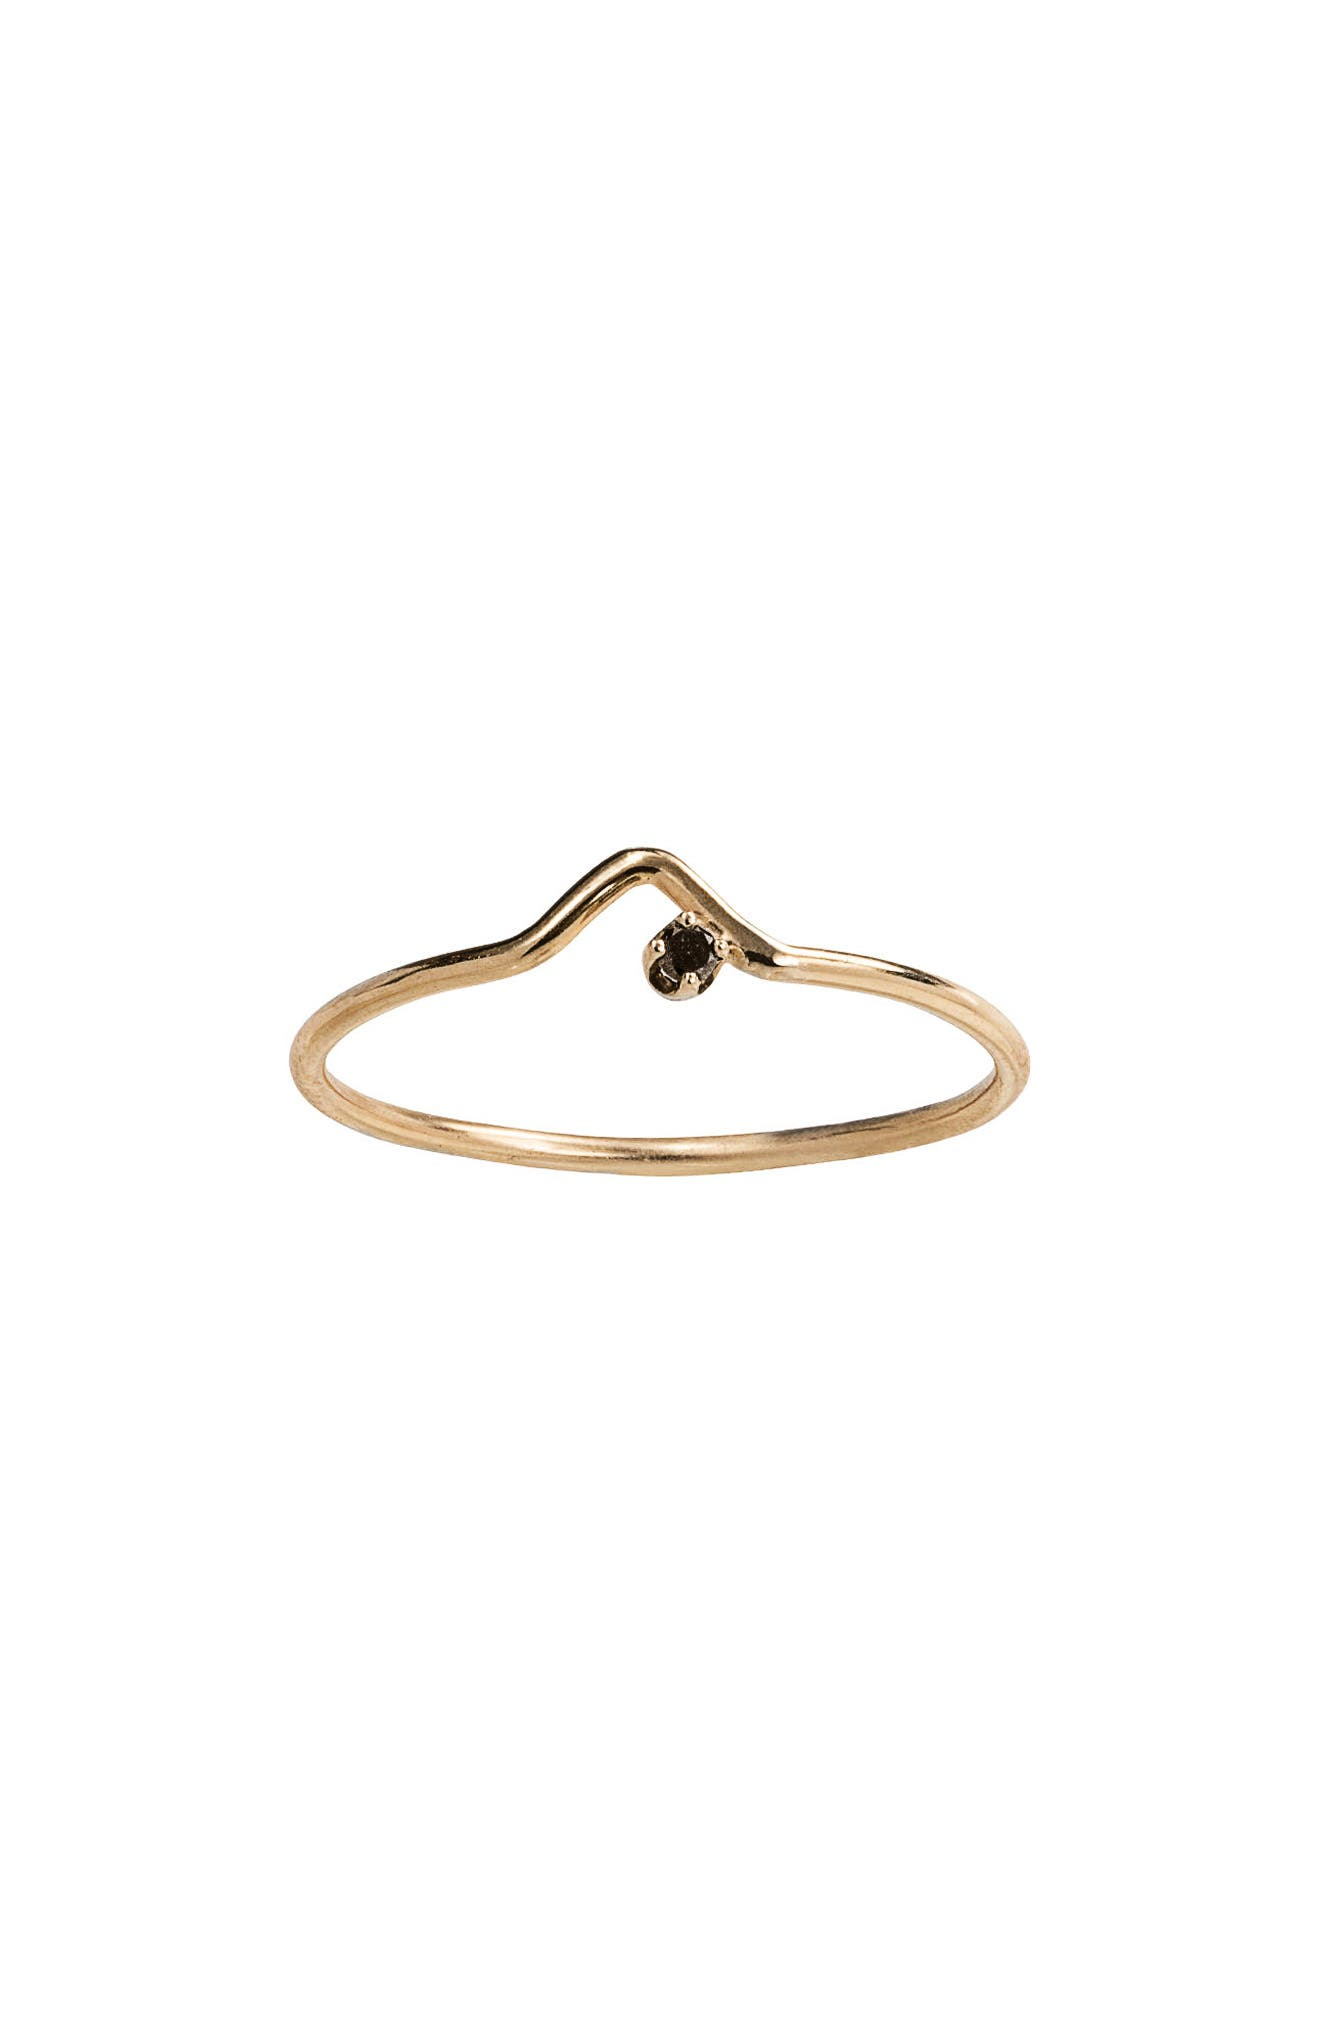 Triangle Lineage Black Diamond Ring,                         Main,                         color, Yellow Gold